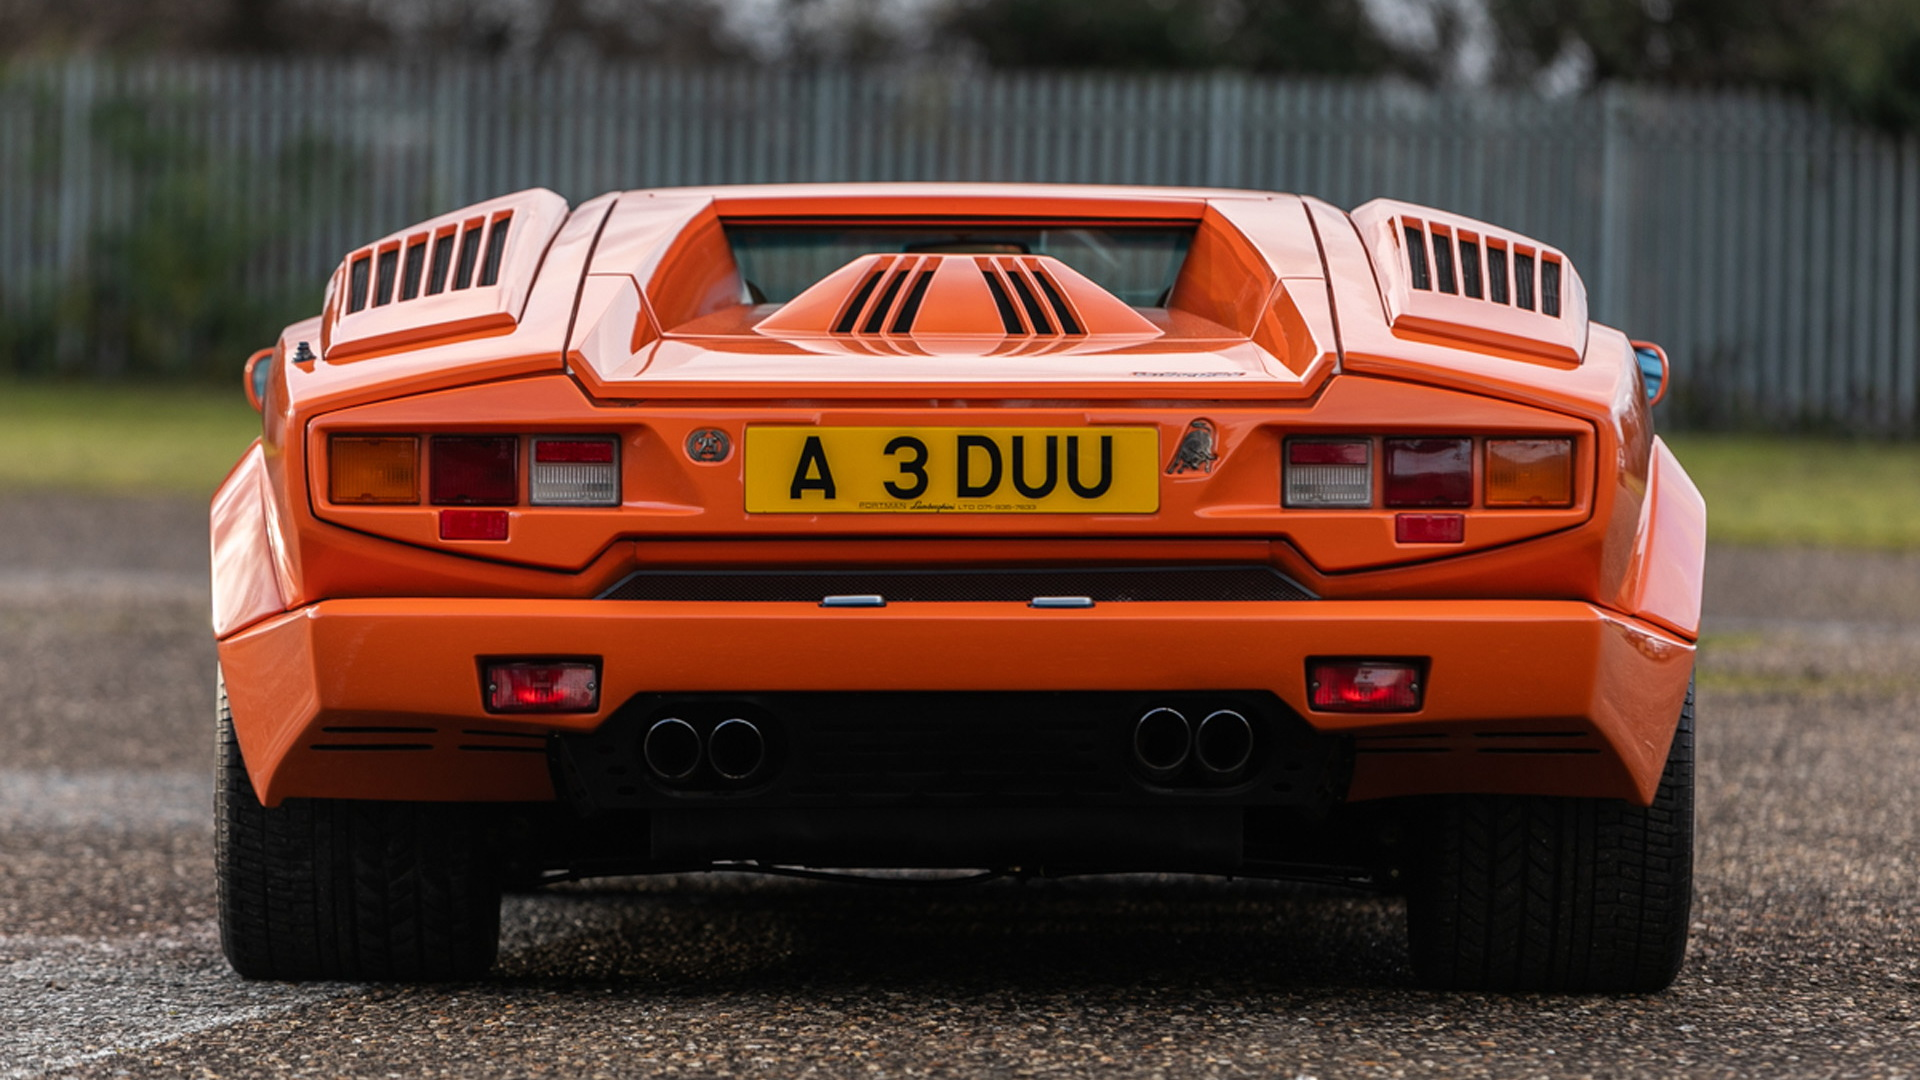 1990 Lamborghini Countach 25th Anniversary Edition - Photo credit: Silverstone Auctions